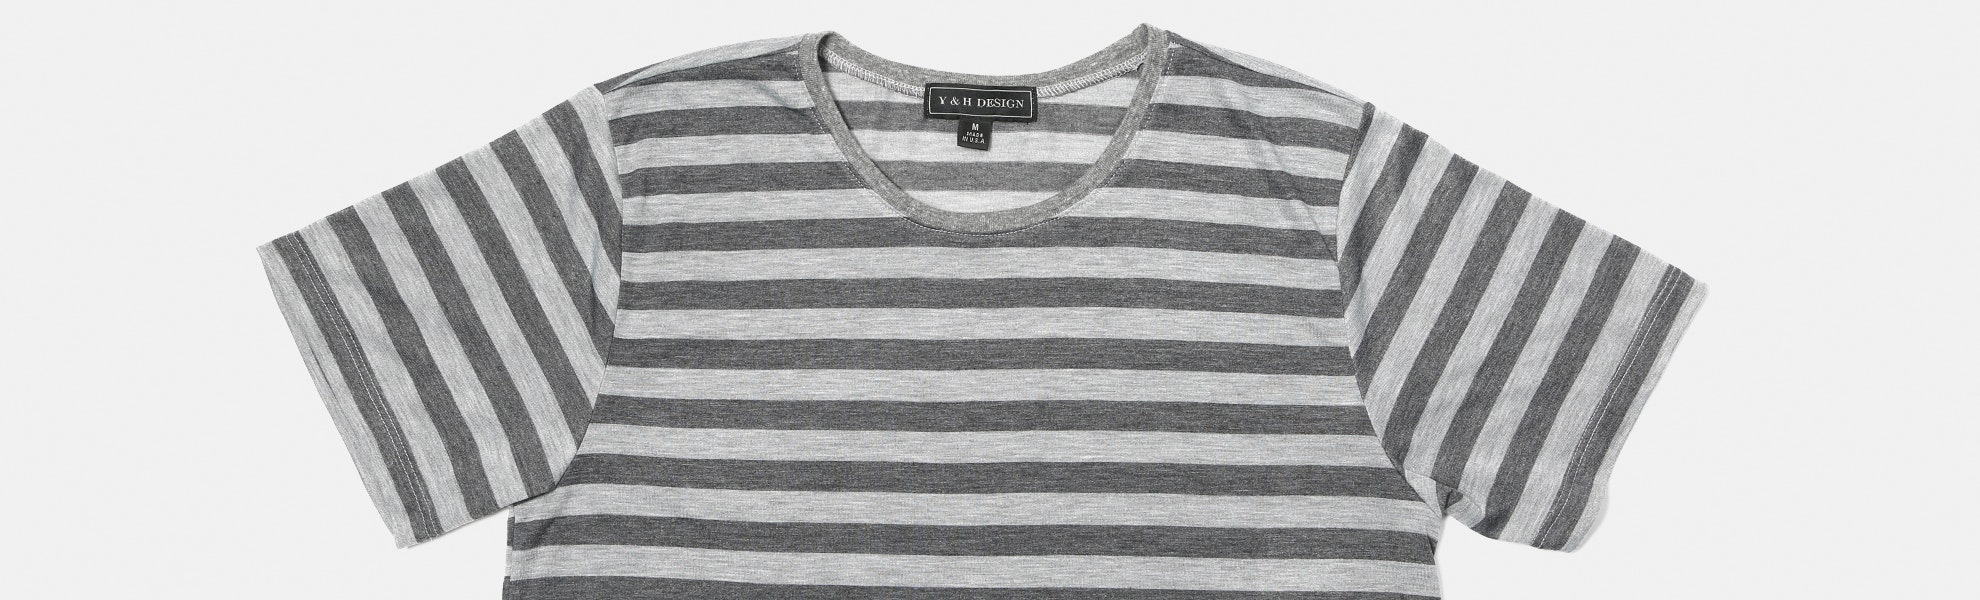 Young & Hip Edward Striped Tees